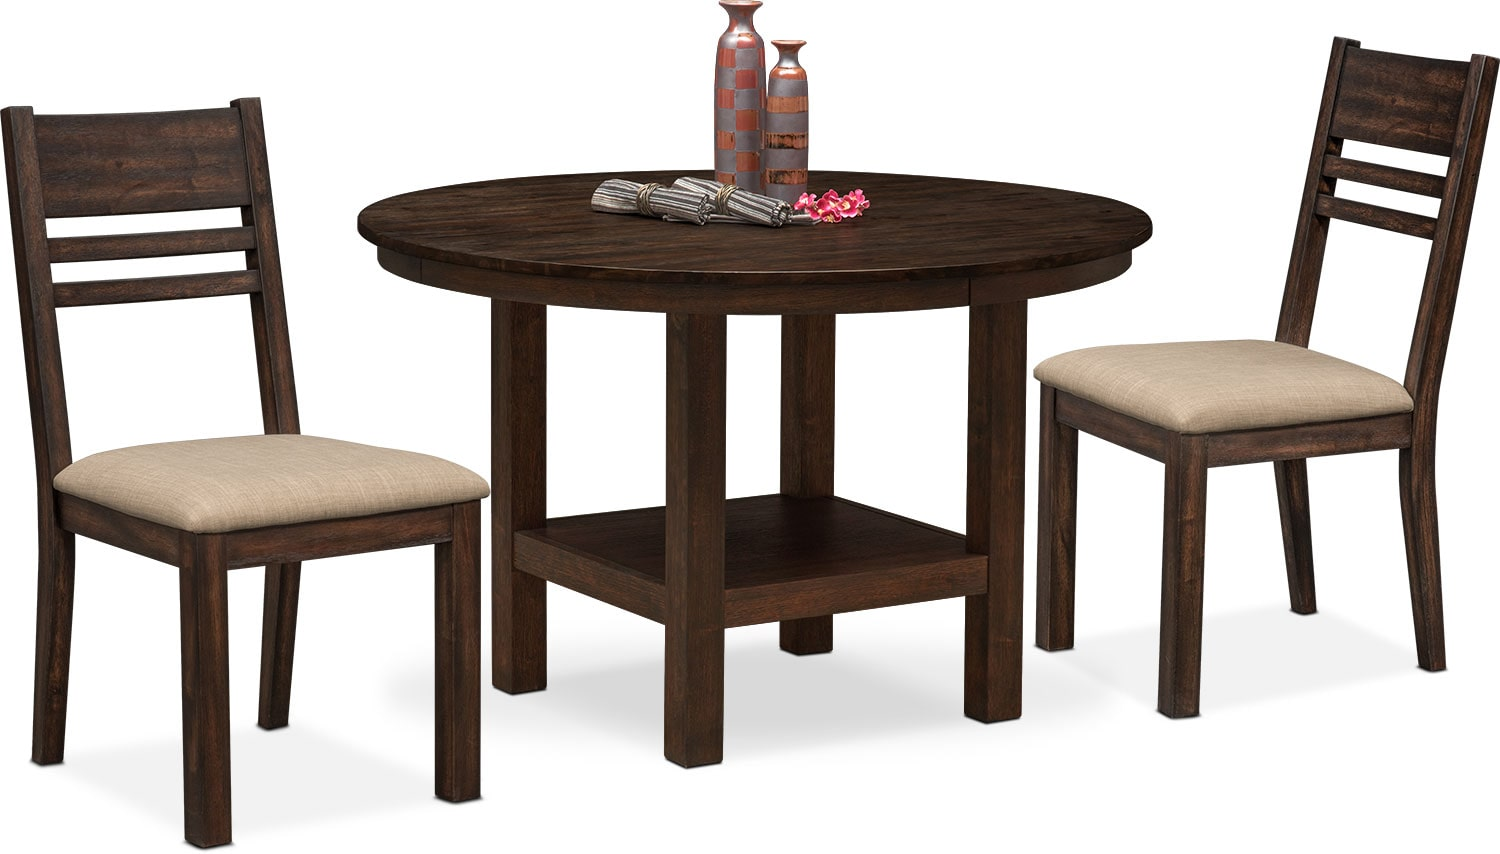 93f0a93ec46 ... Dining Room Furniture - Tribeca Round Dining Table and 2 Side Chairs